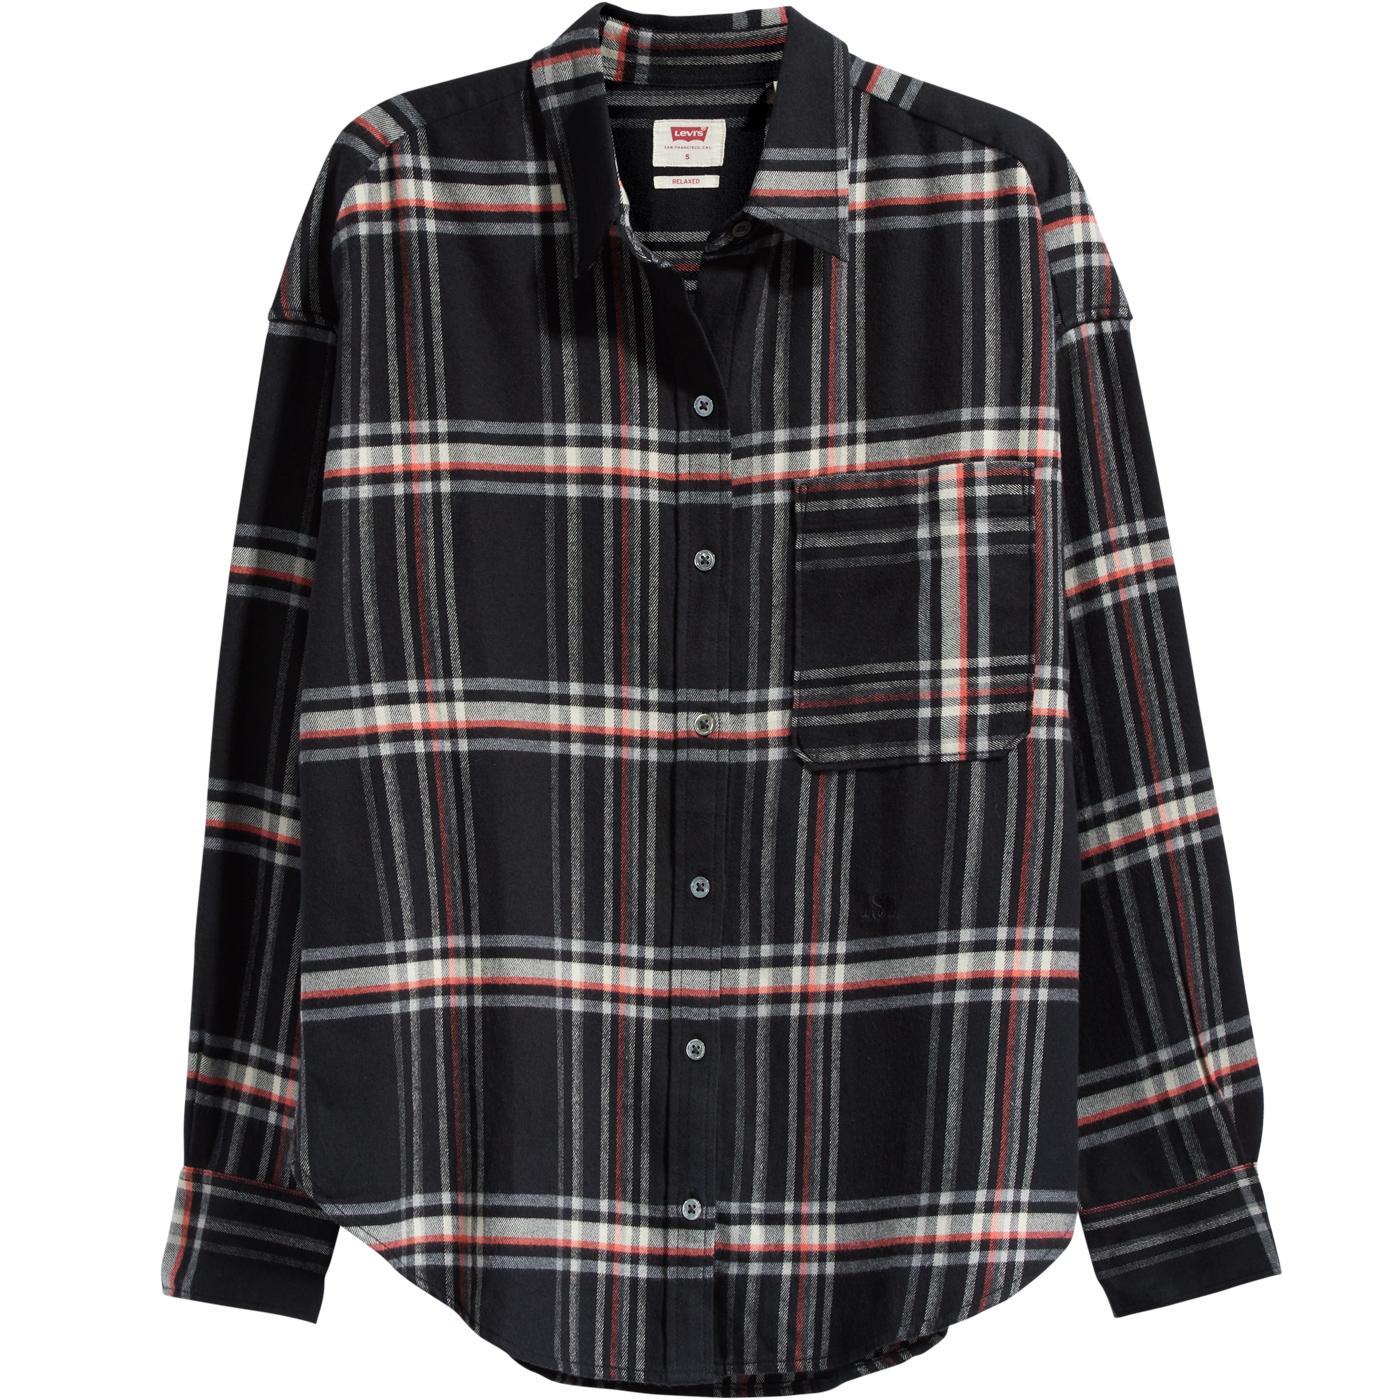 LEVI'S Womens Relaxed Fit Retro Plaid Check Shirt